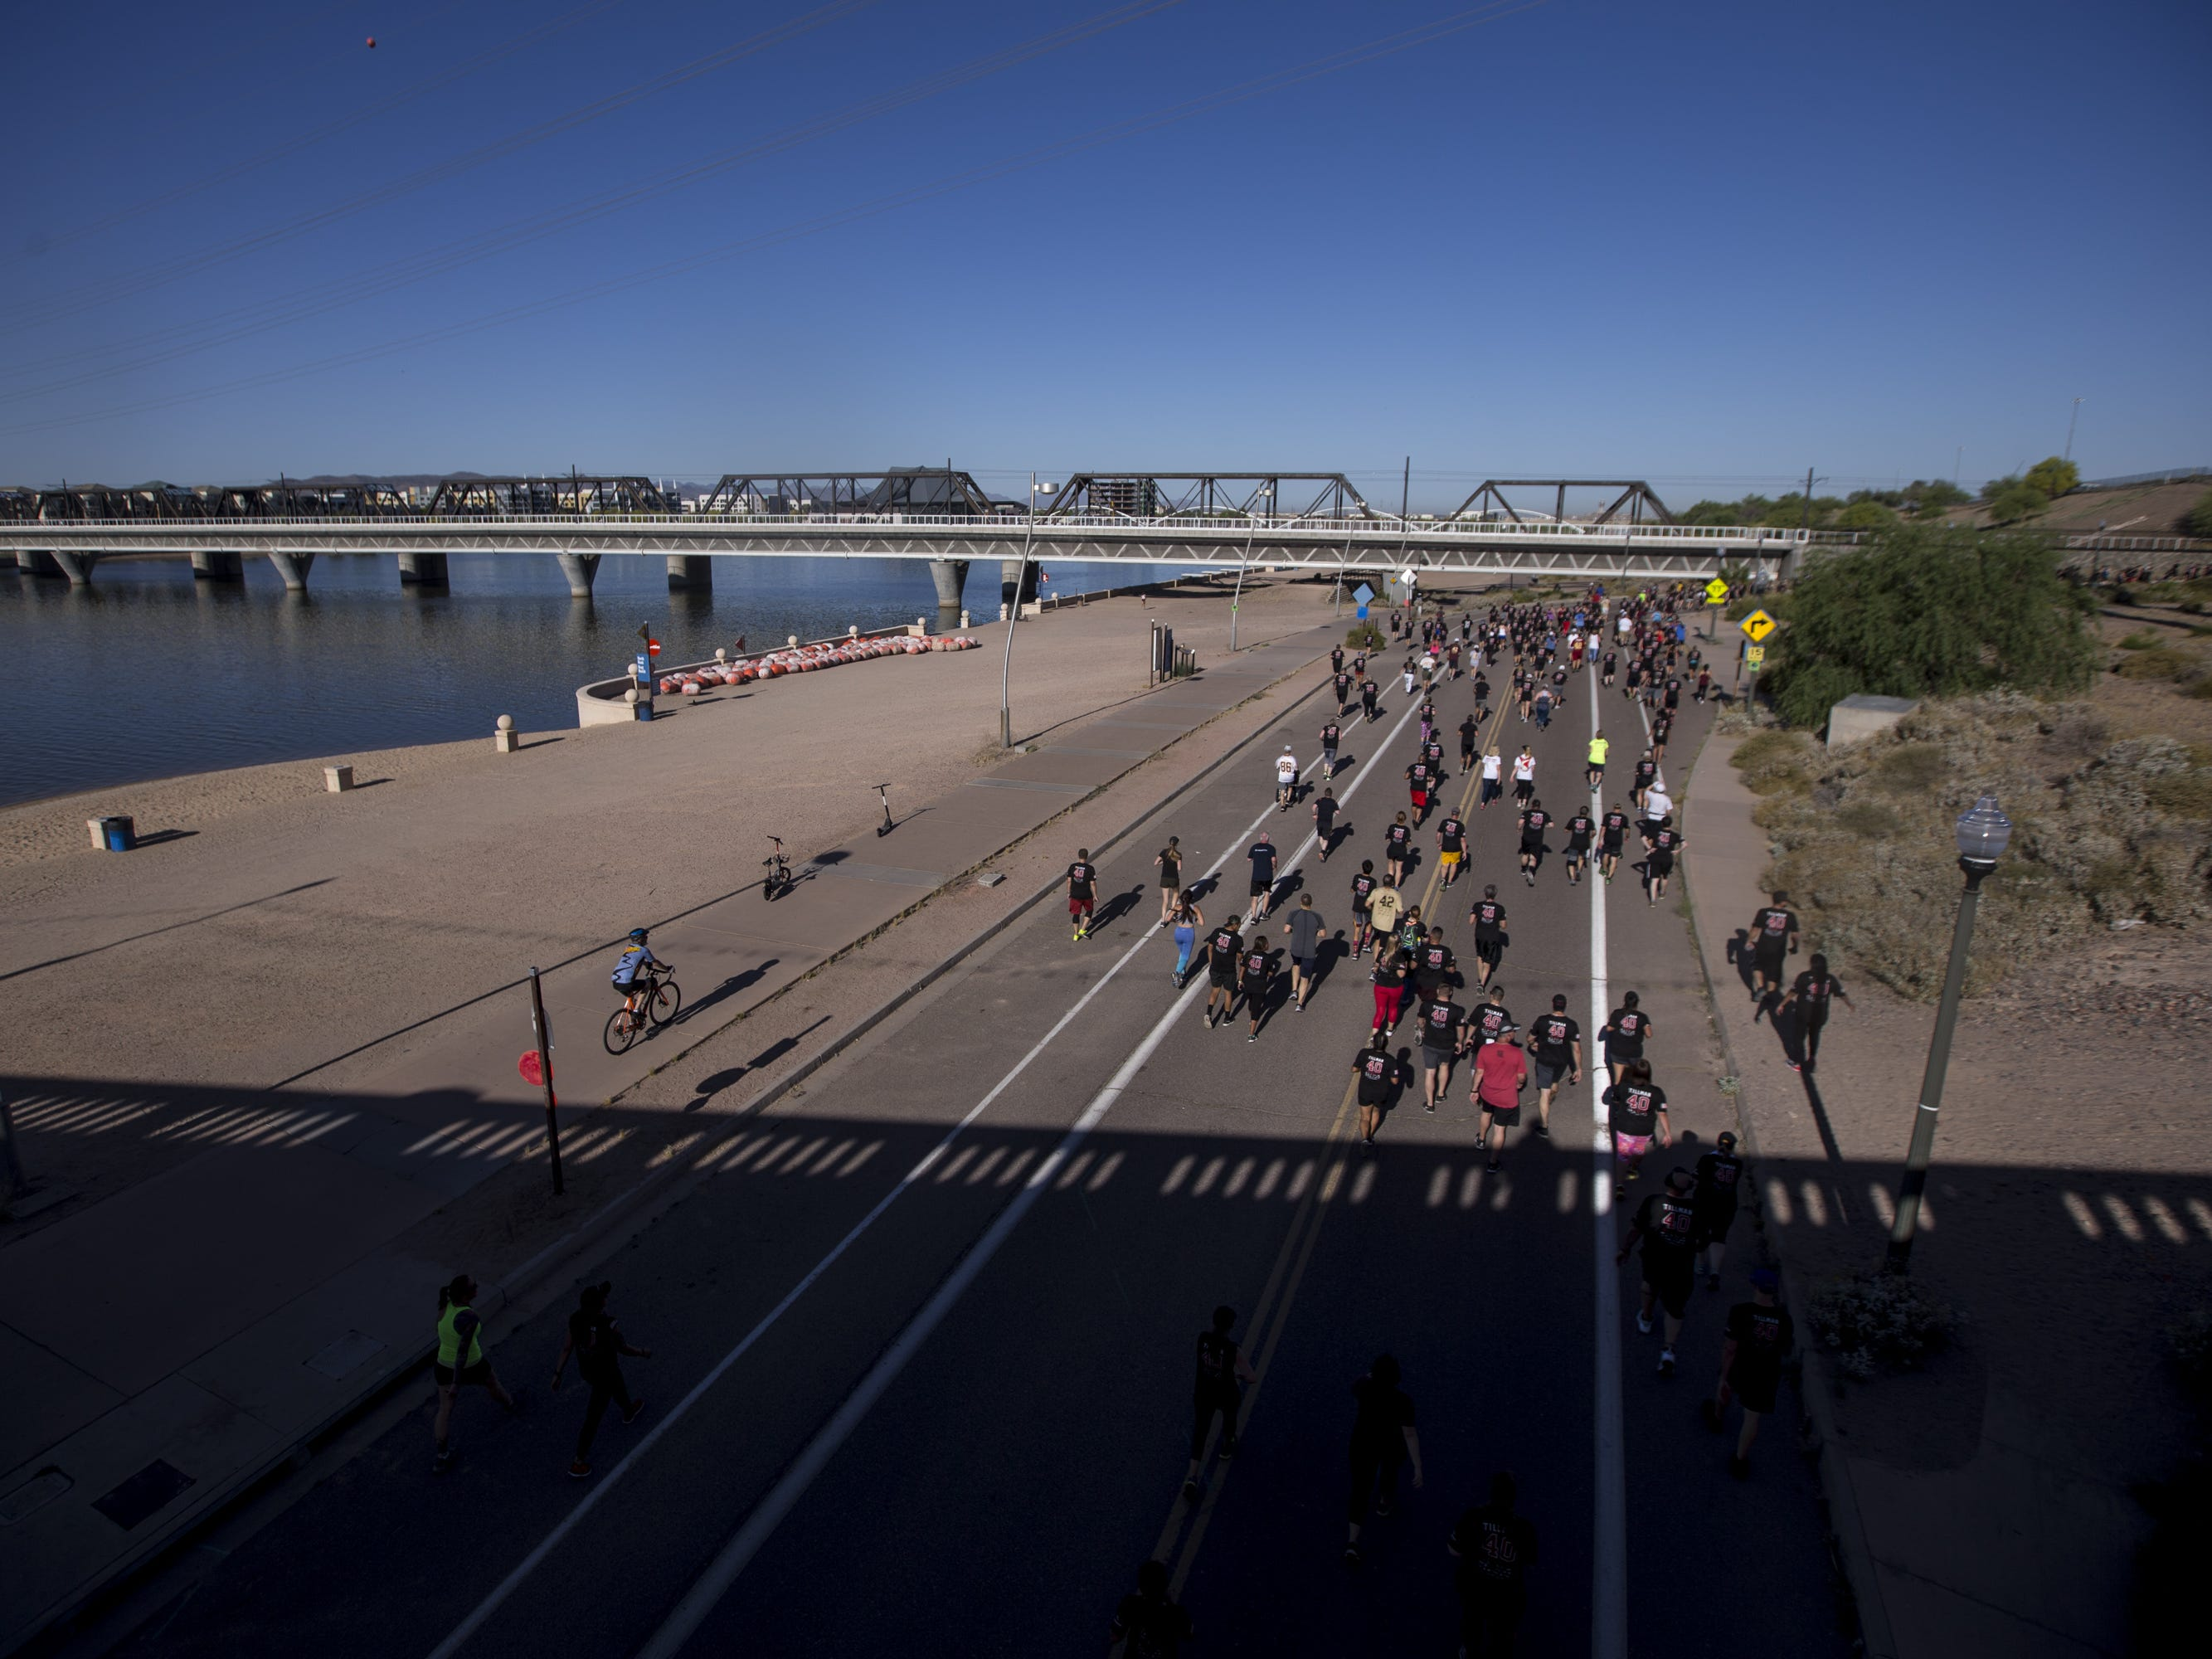 Participants run on Lake View Drive during the 15th Annual Pat's Run on Saturday, April 27, 2019, in Tempe, Ariz.